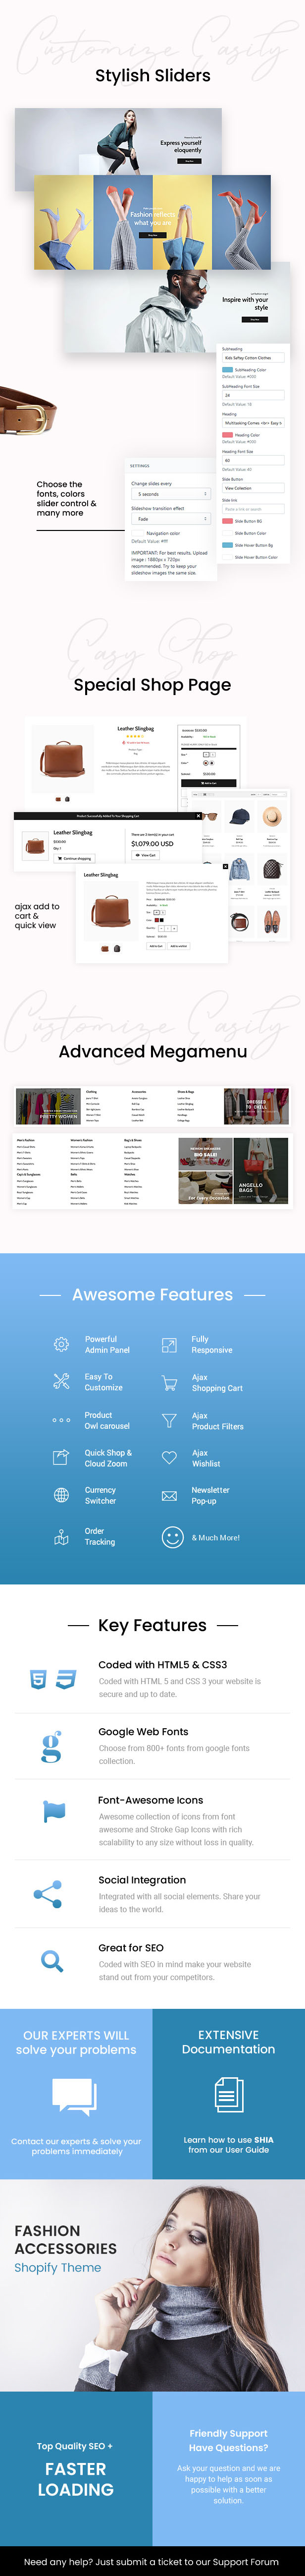 Shia - Modern, Simple Shopify Theme - 1